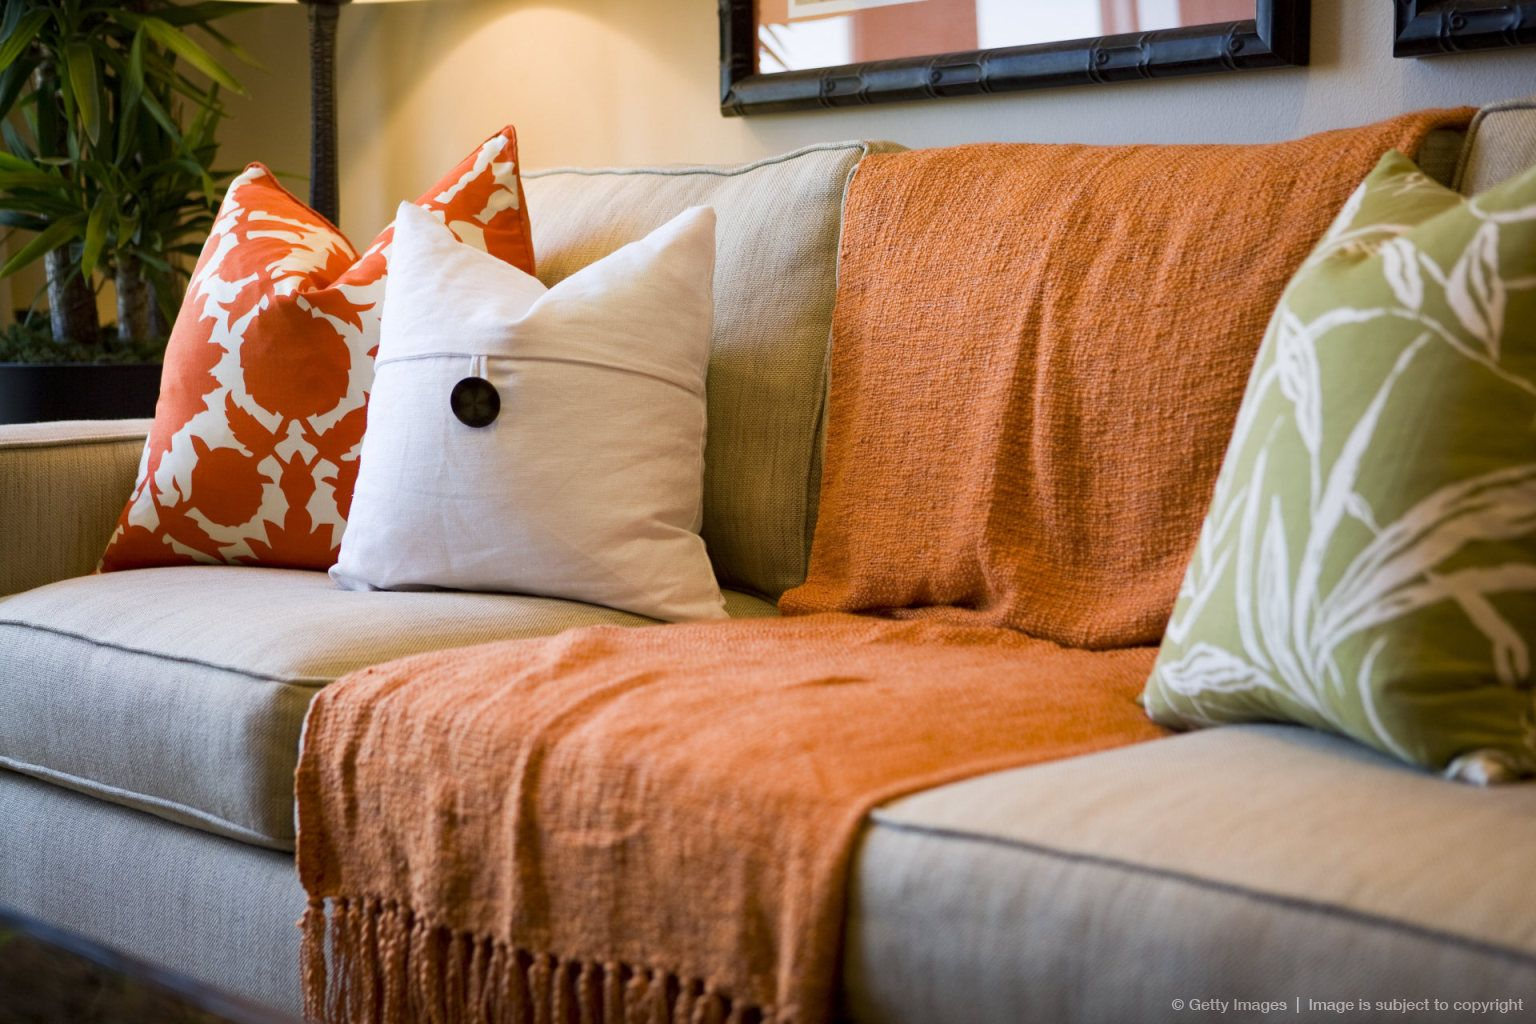 Comfortable Sofa With Orange Throw Blanket And Decorative